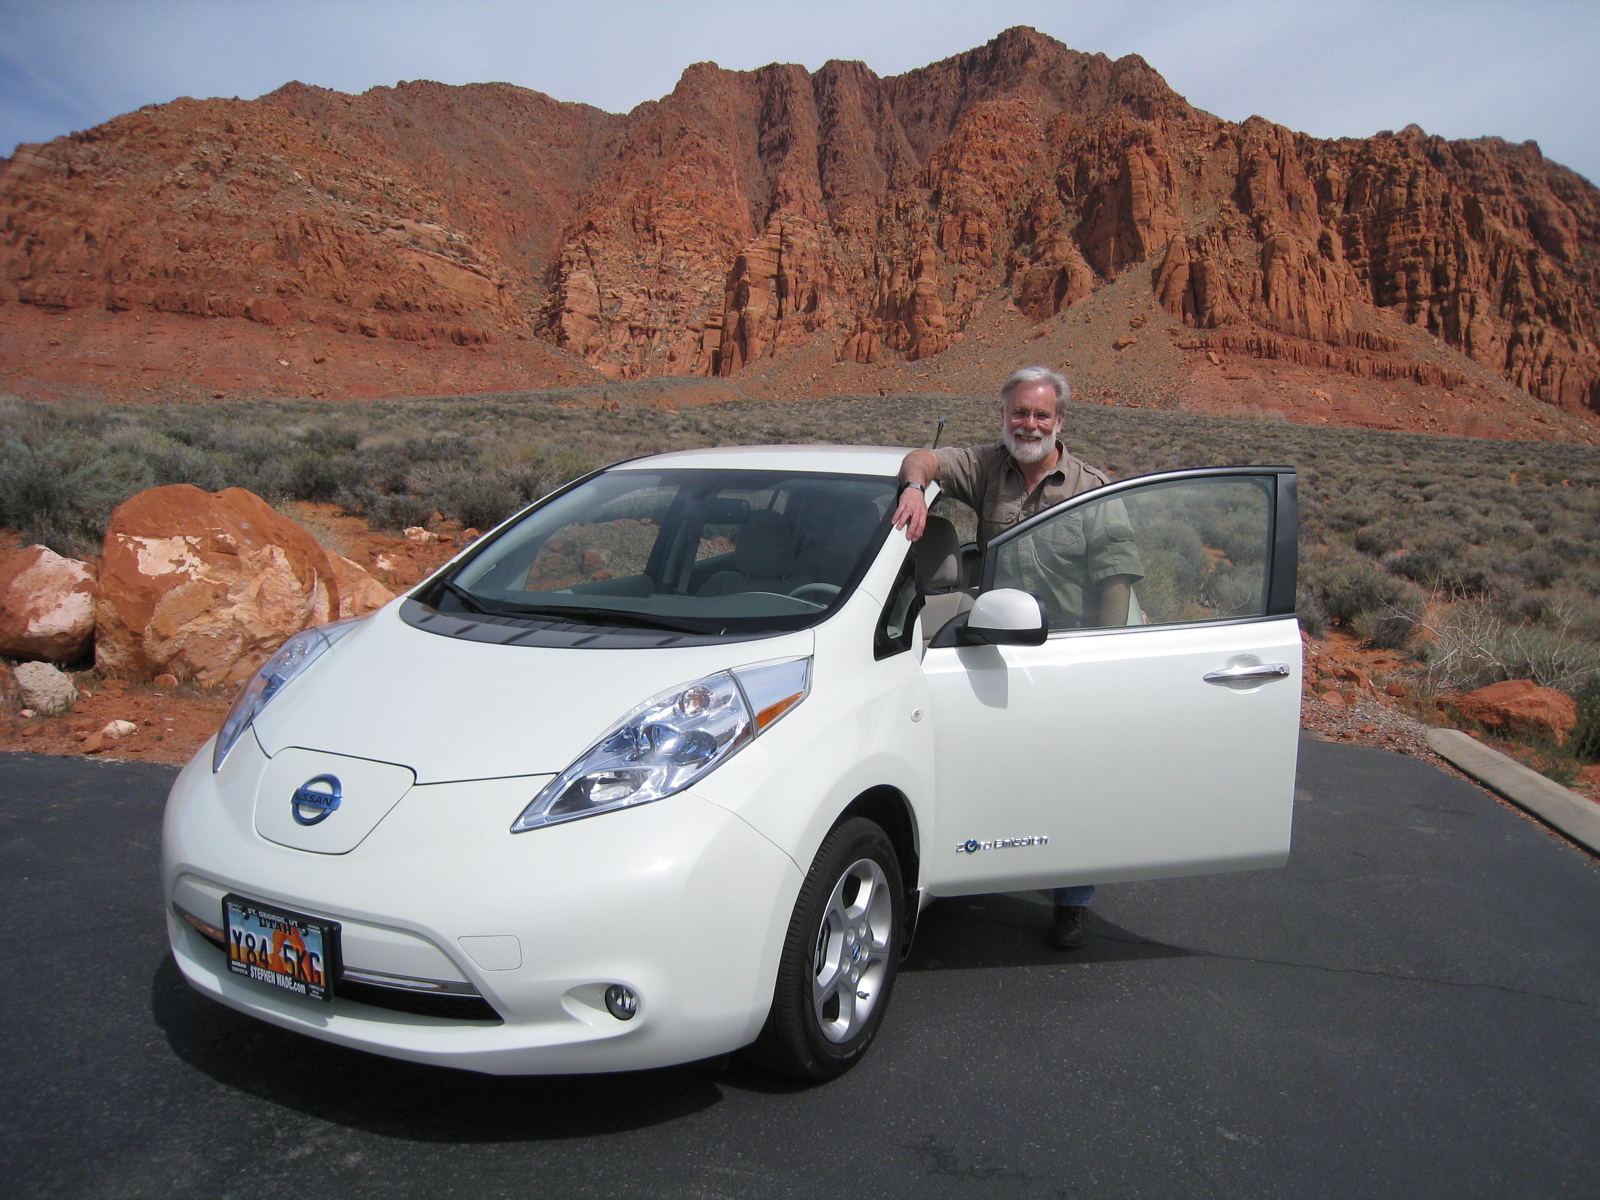 my e life now nissan leaf battery capacity loss due to high miles. Black Bedroom Furniture Sets. Home Design Ideas